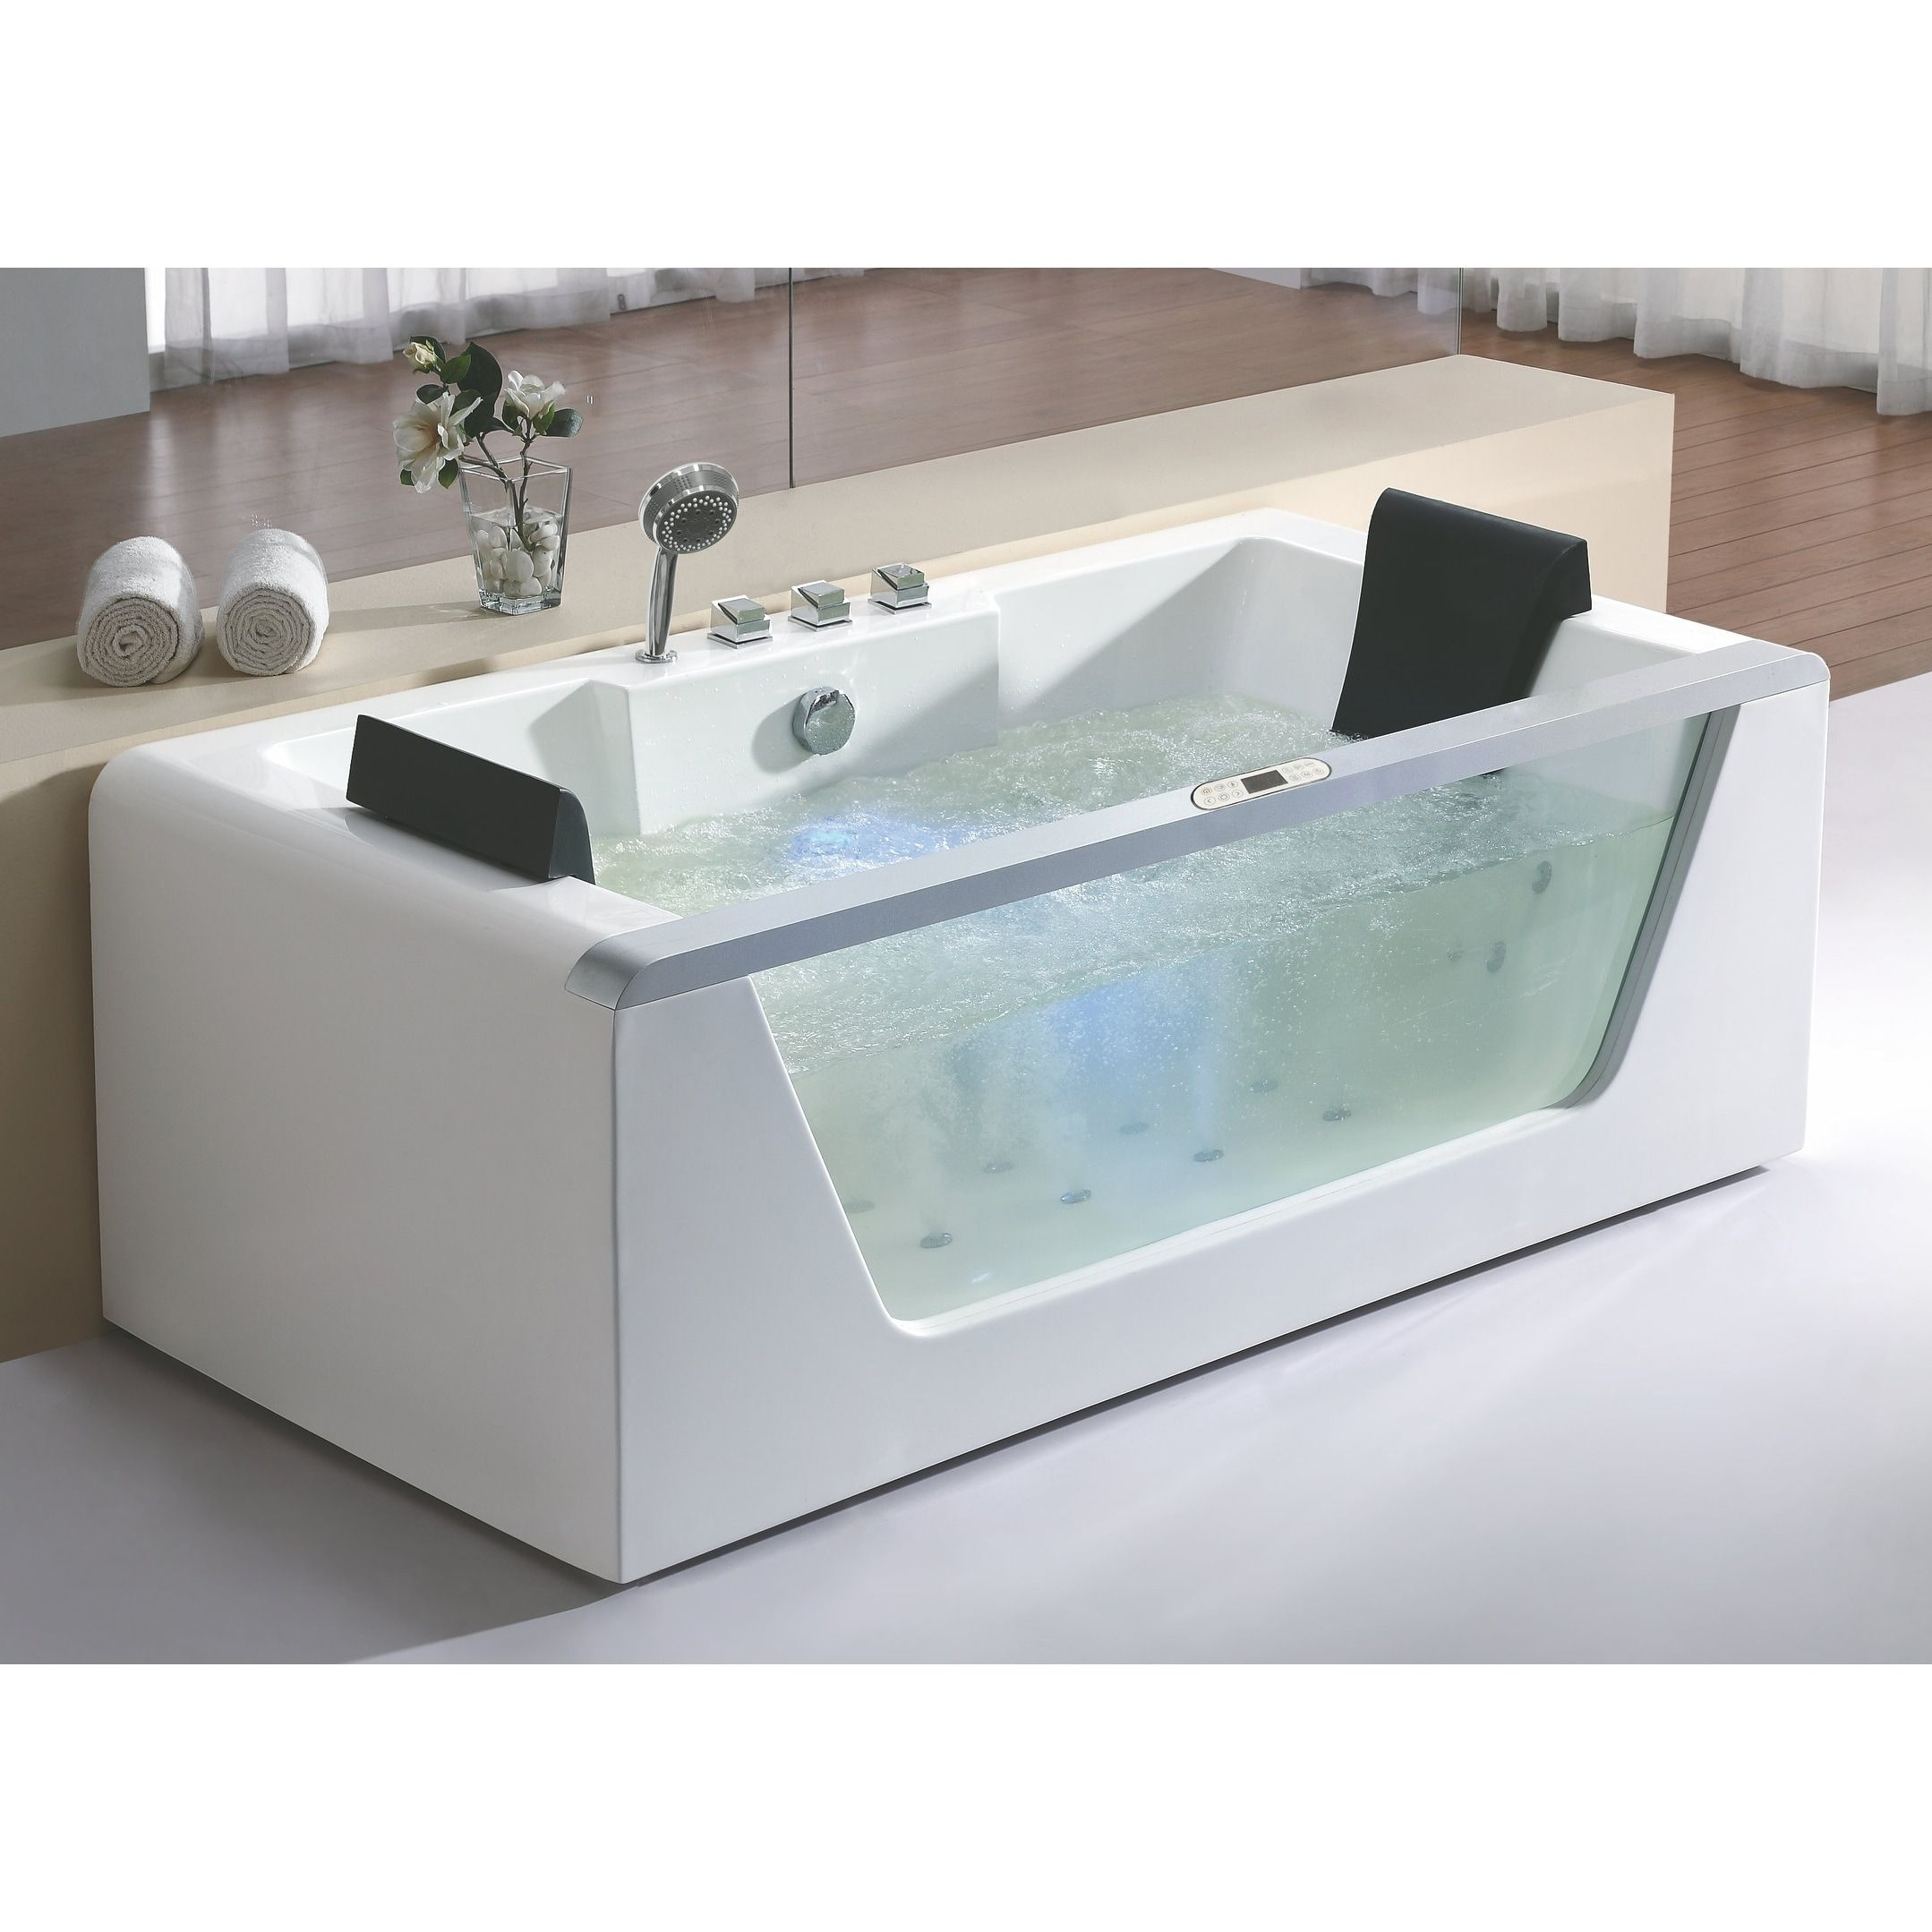 Eago AM196ETL 6 ft Clear Rectangular Acrylic Whirlpool Bathtub for ...